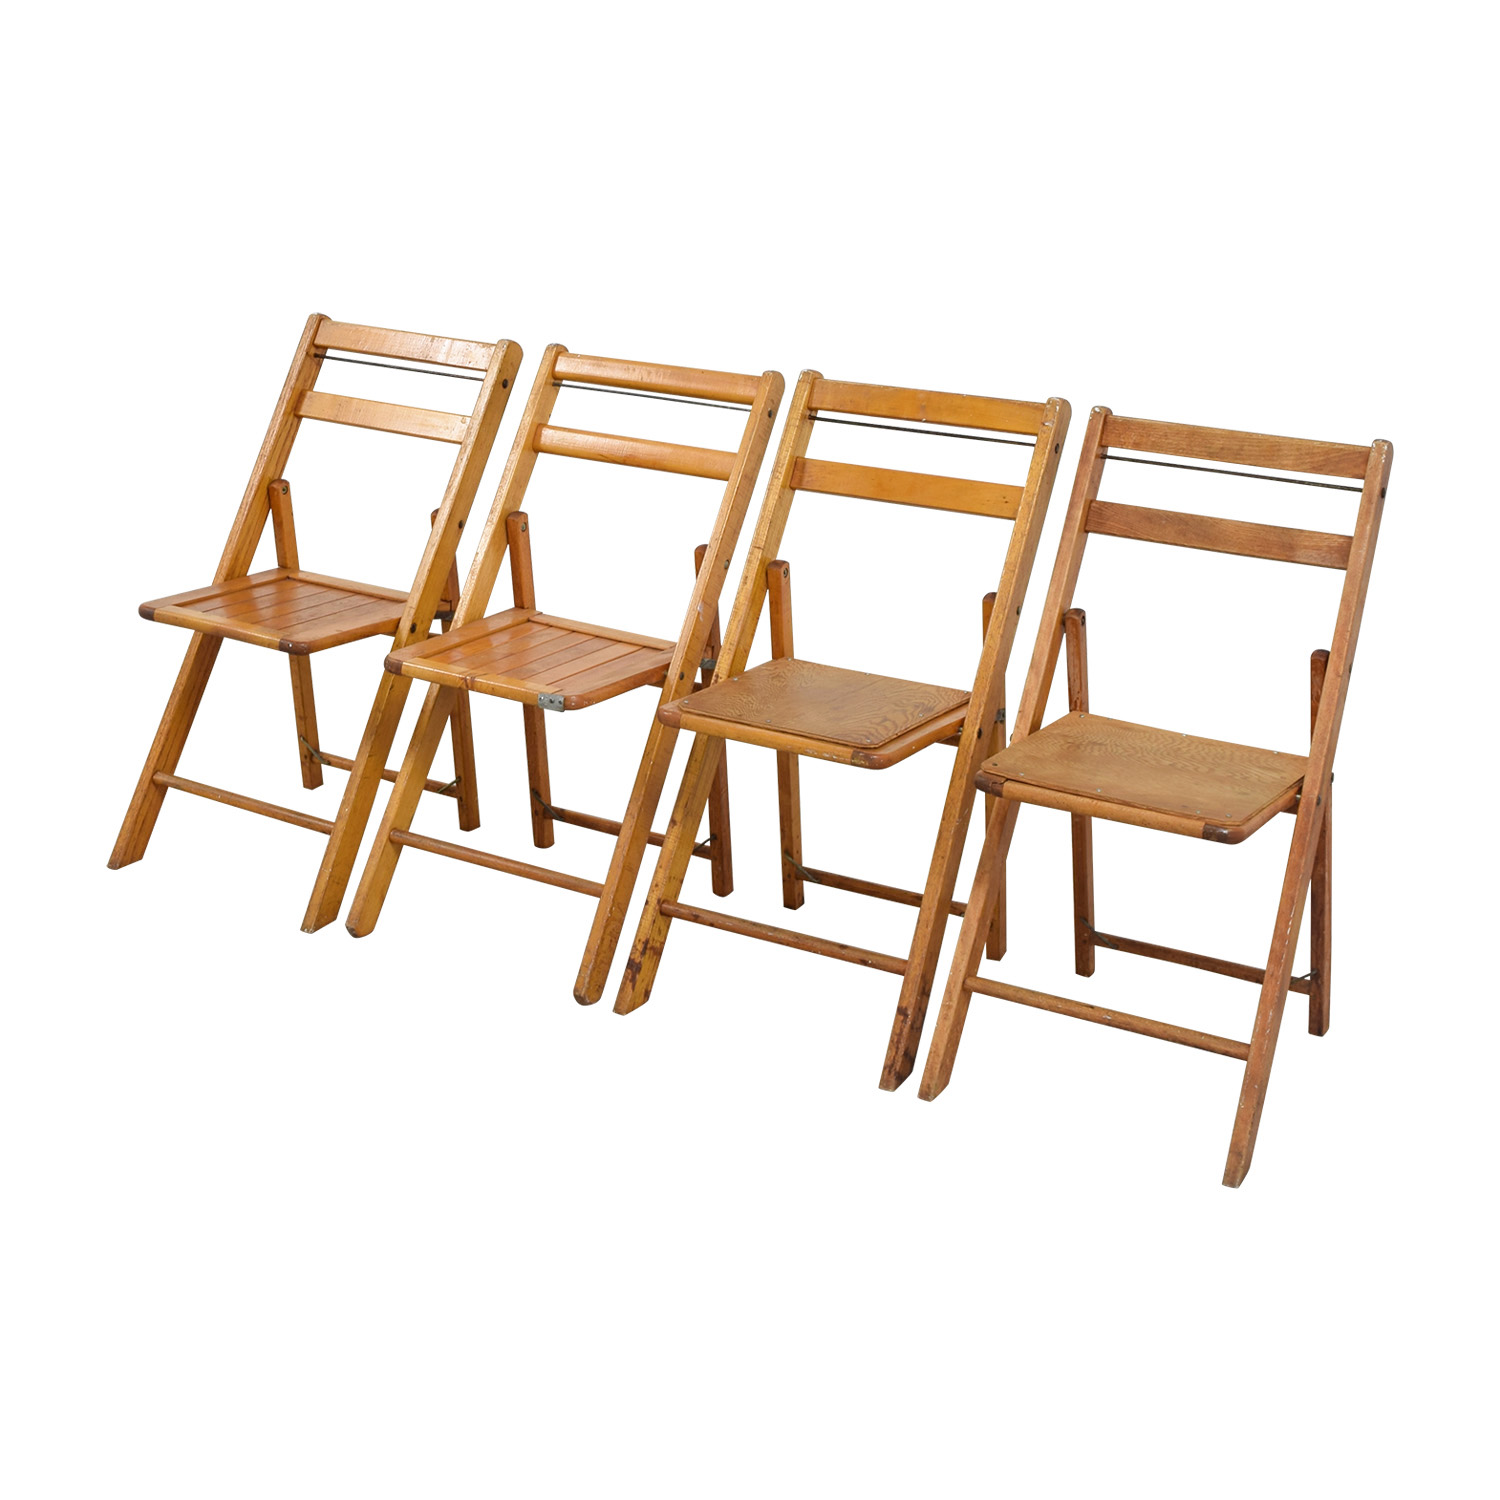 shop Rustic Wood Folding Chairs Chairs